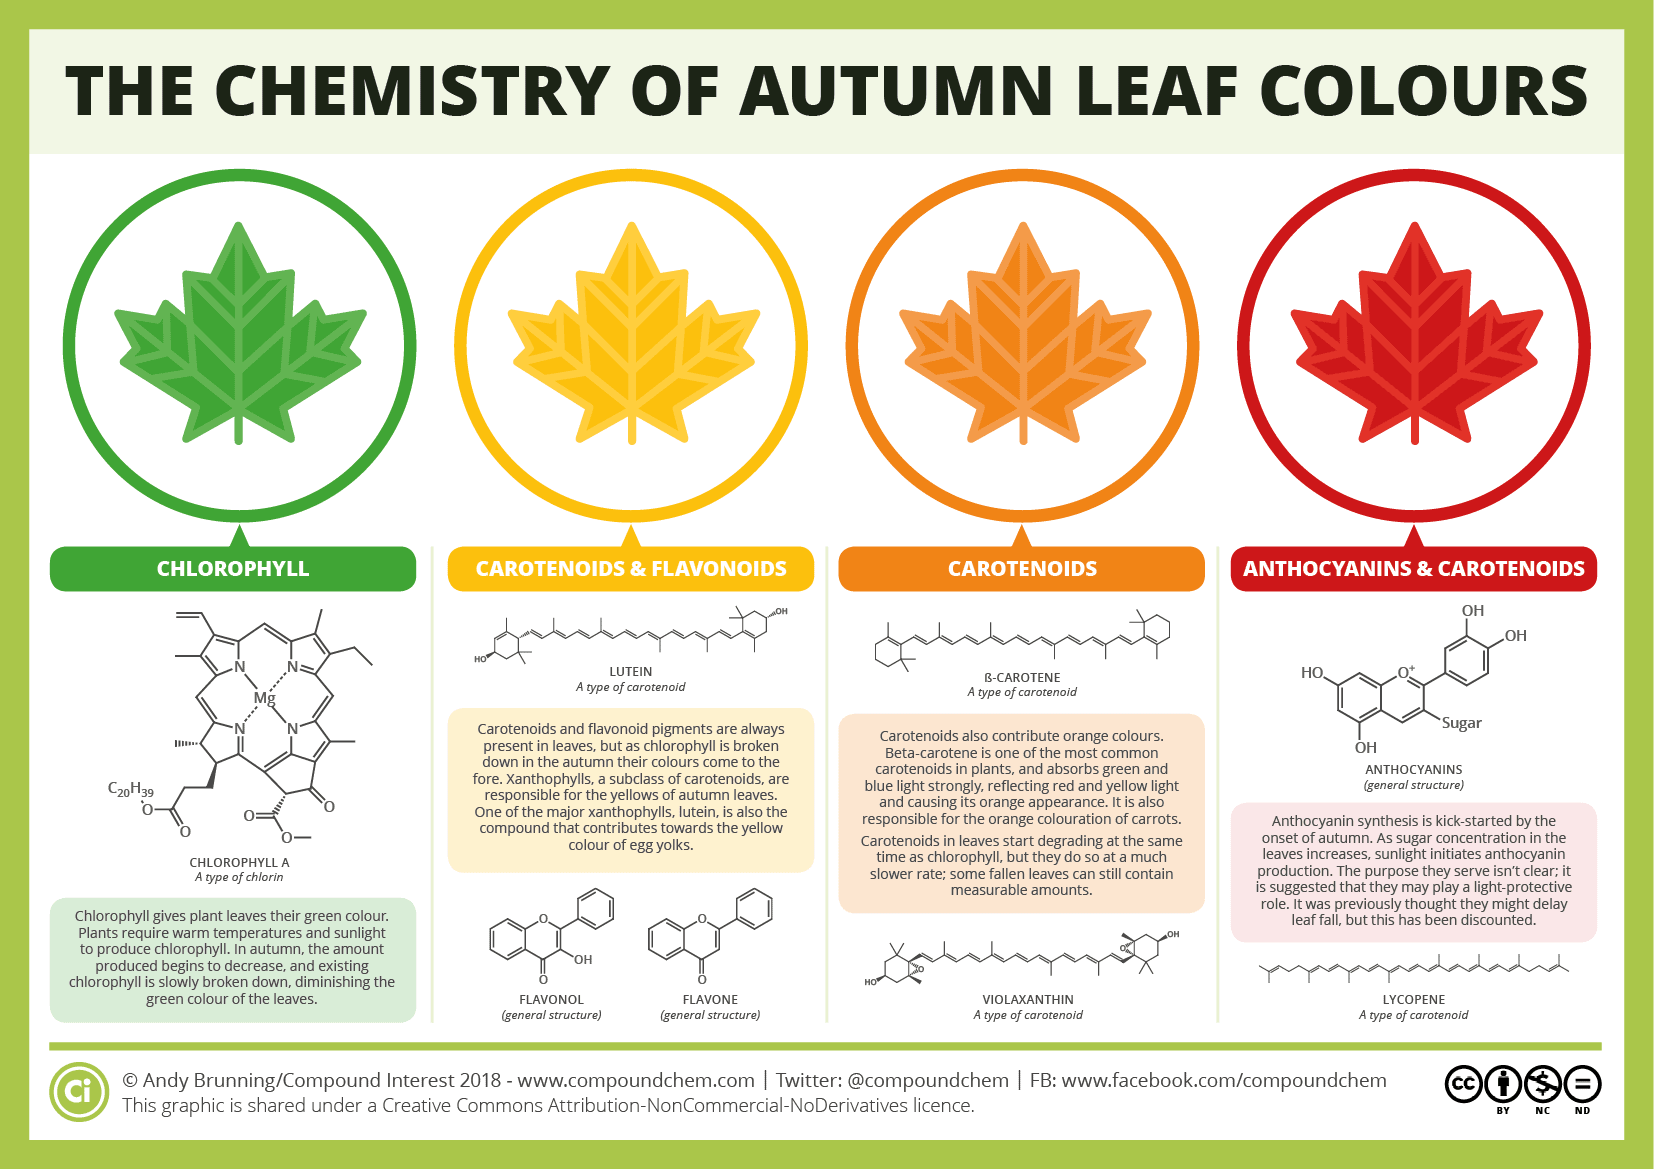 Diagram - In leafy trees and plants, the substance leaves use to harness energy from the sun — chlorophyll — breaks down and drains away during fall. Plants take in nutrients like nitrogen from those leaves before they fall. And as the green chlorophyll departs, leaves change color based on pigments left behind. Carotenoid pigments, for example, will turn a leaf yellow; anthocyanin pigments turn trees and shrubs red. The balance of each of those pigments creates a spectrum of fall color, with red anthocyanins and yellow carotenoids creating brilliant orange hues. If some chlorophyll remains with either of those pigments, leaf colors may range from yellow green to a reddish brown.